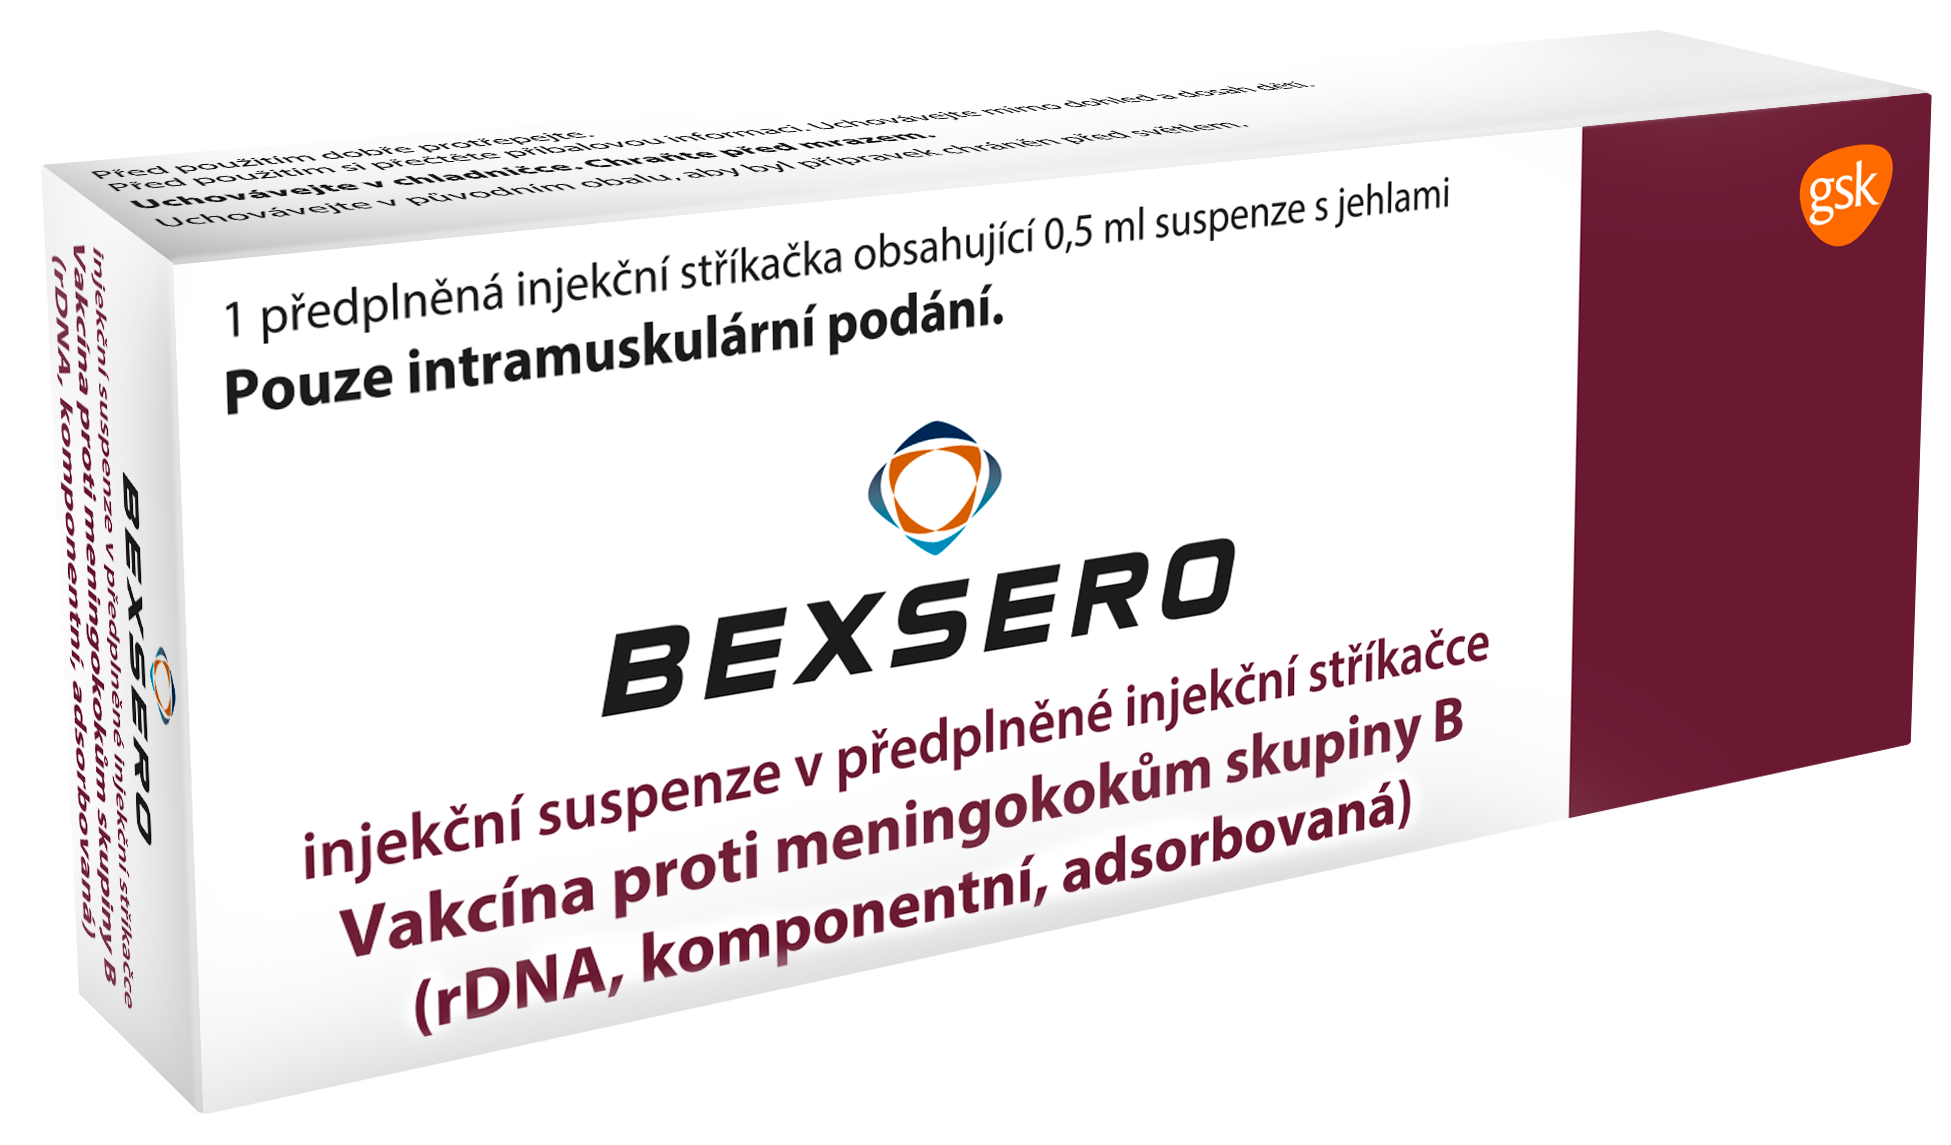 Picture of Bexsero pack